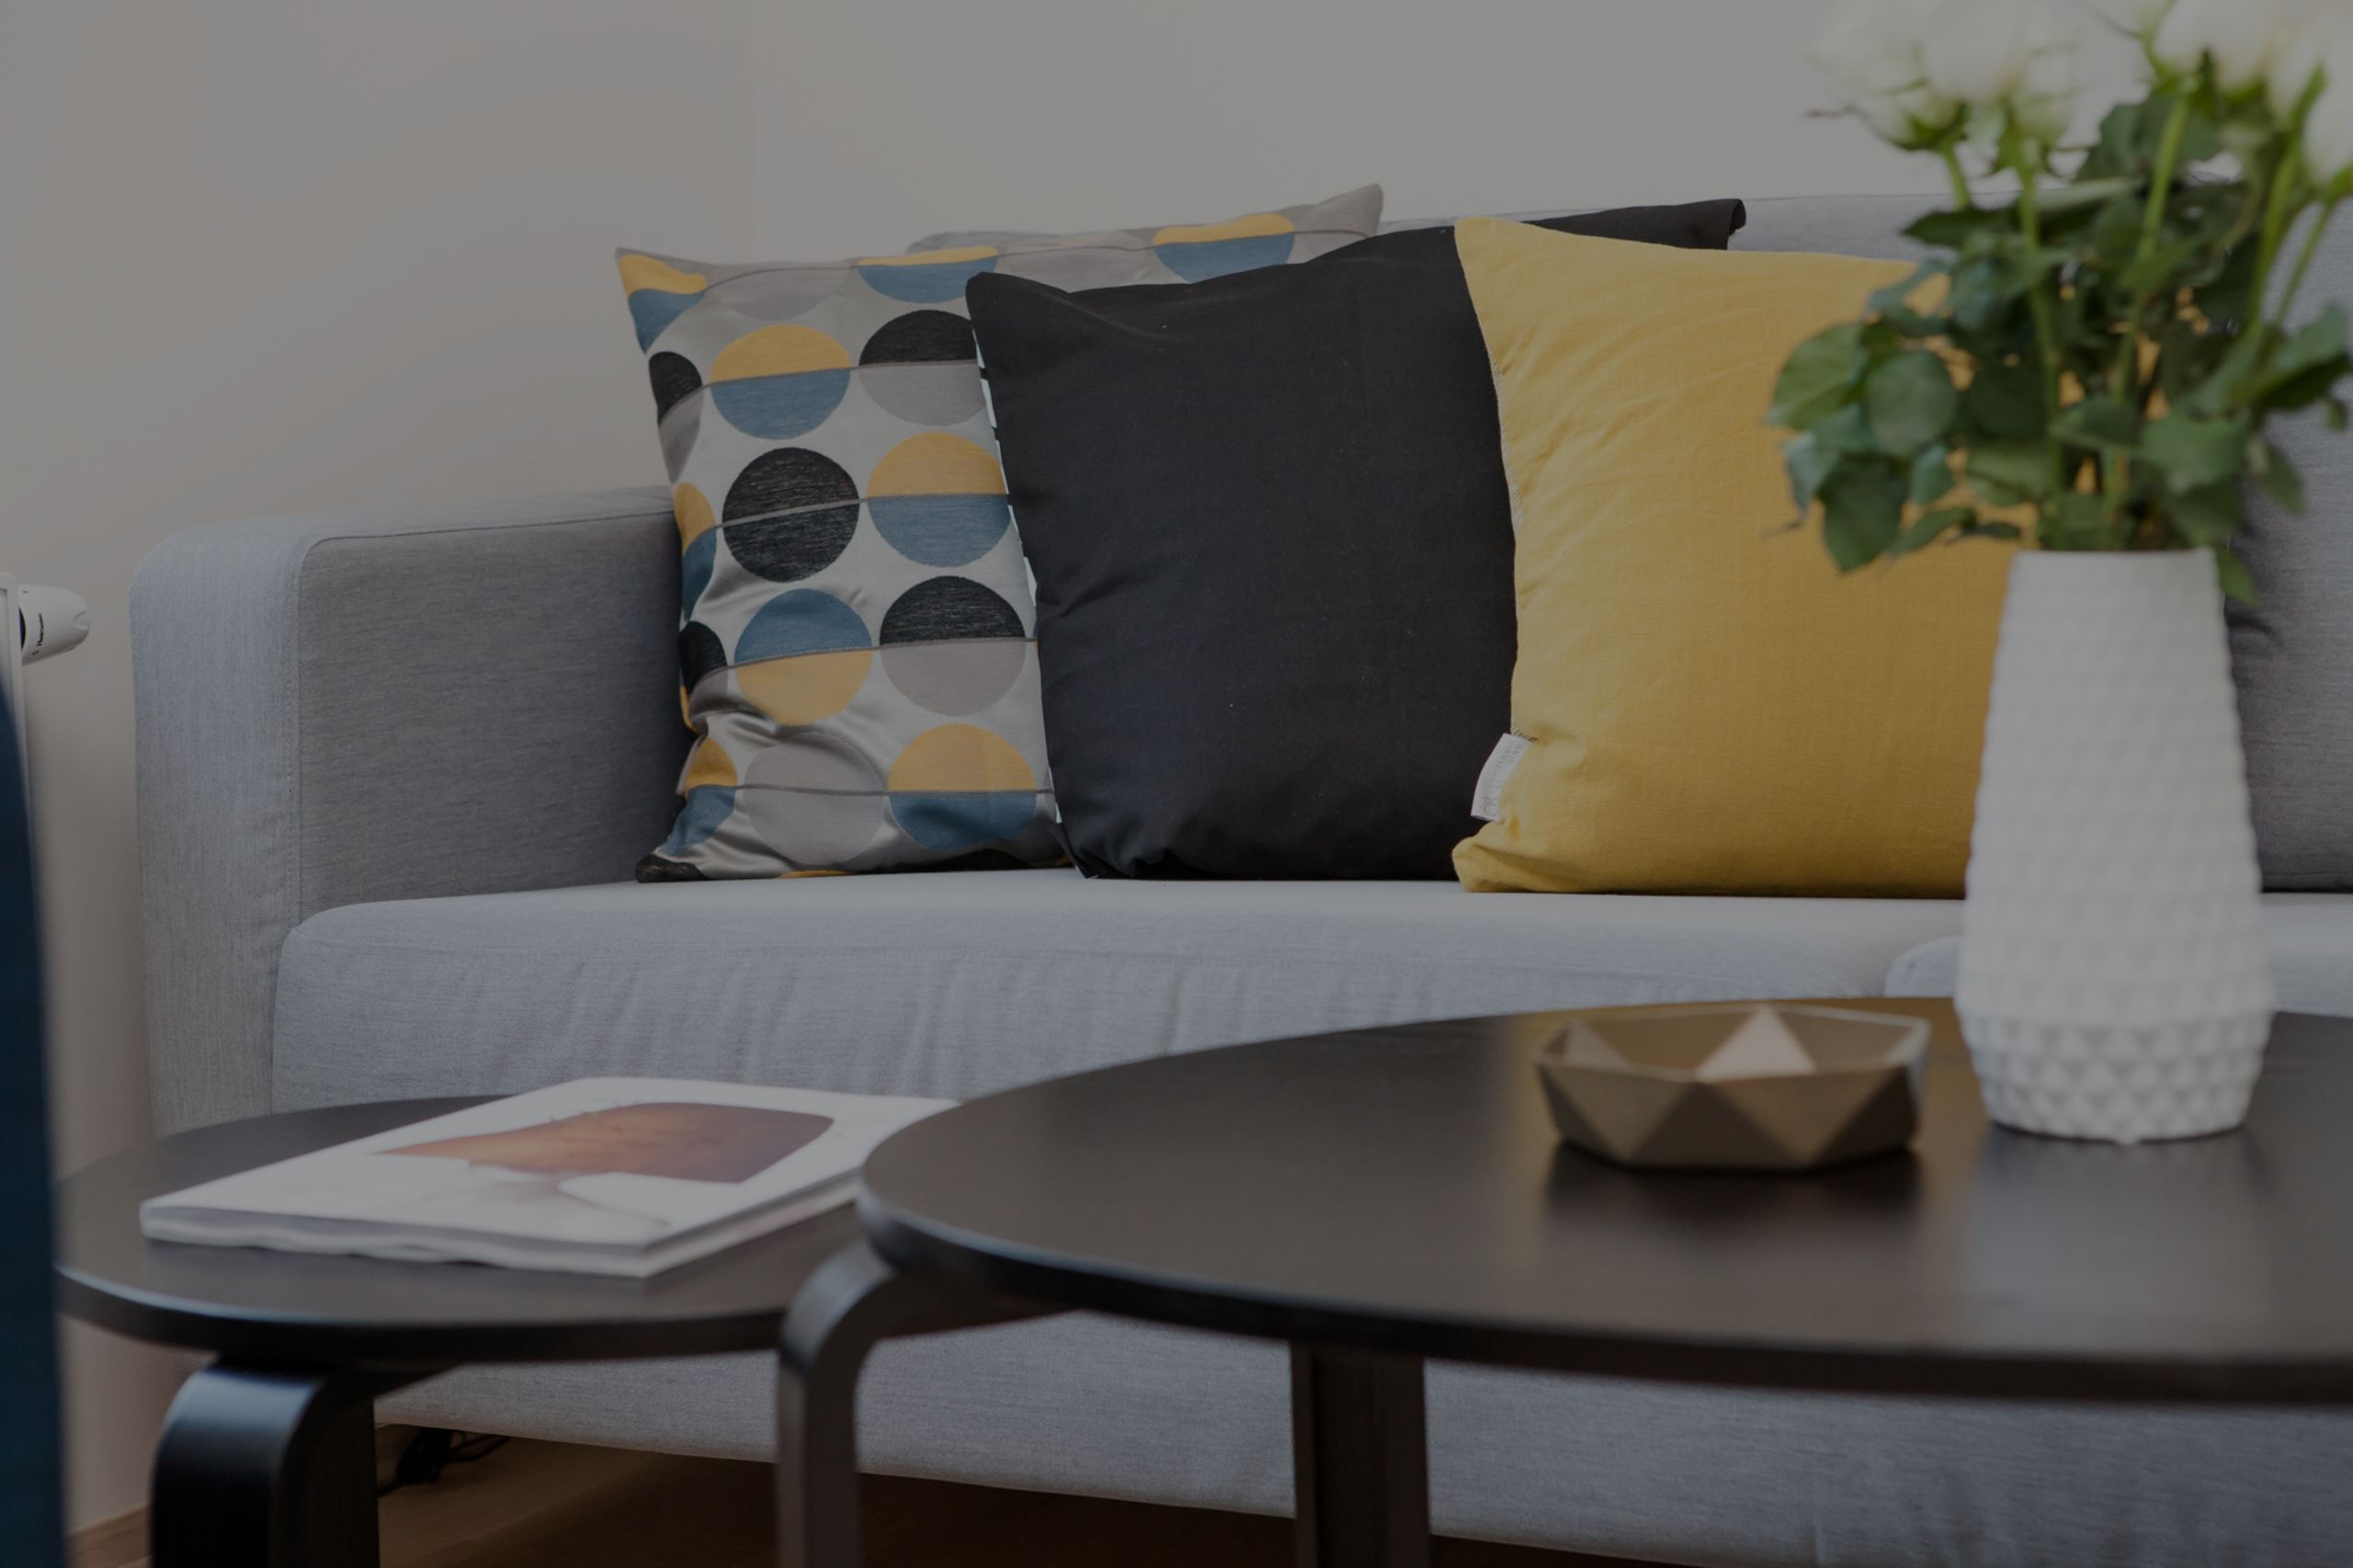 7 Inexpensive Staging Props for Selling Your Home